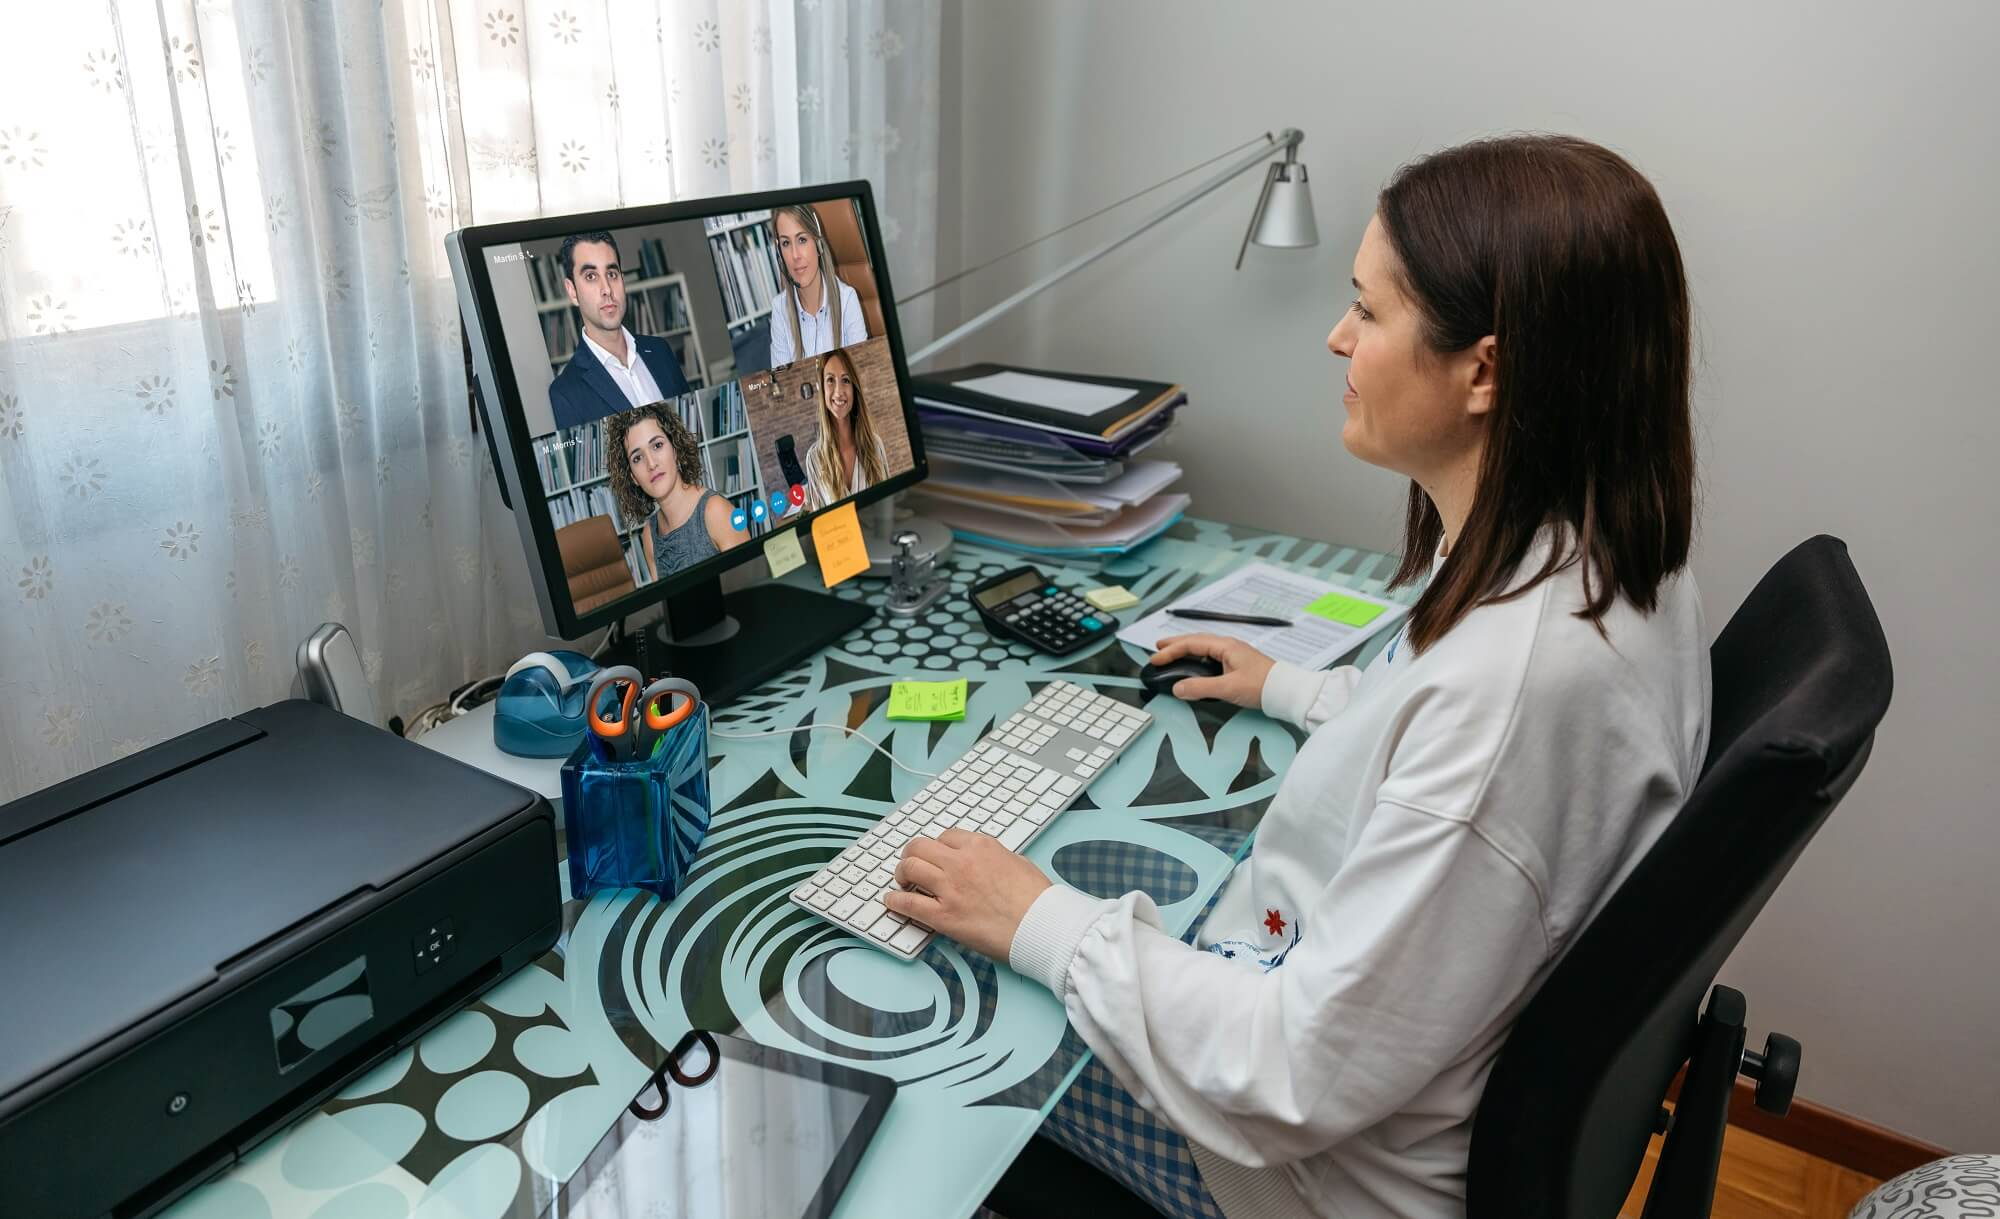 Woman having a virtual conference meeting from home and planning for virtual event